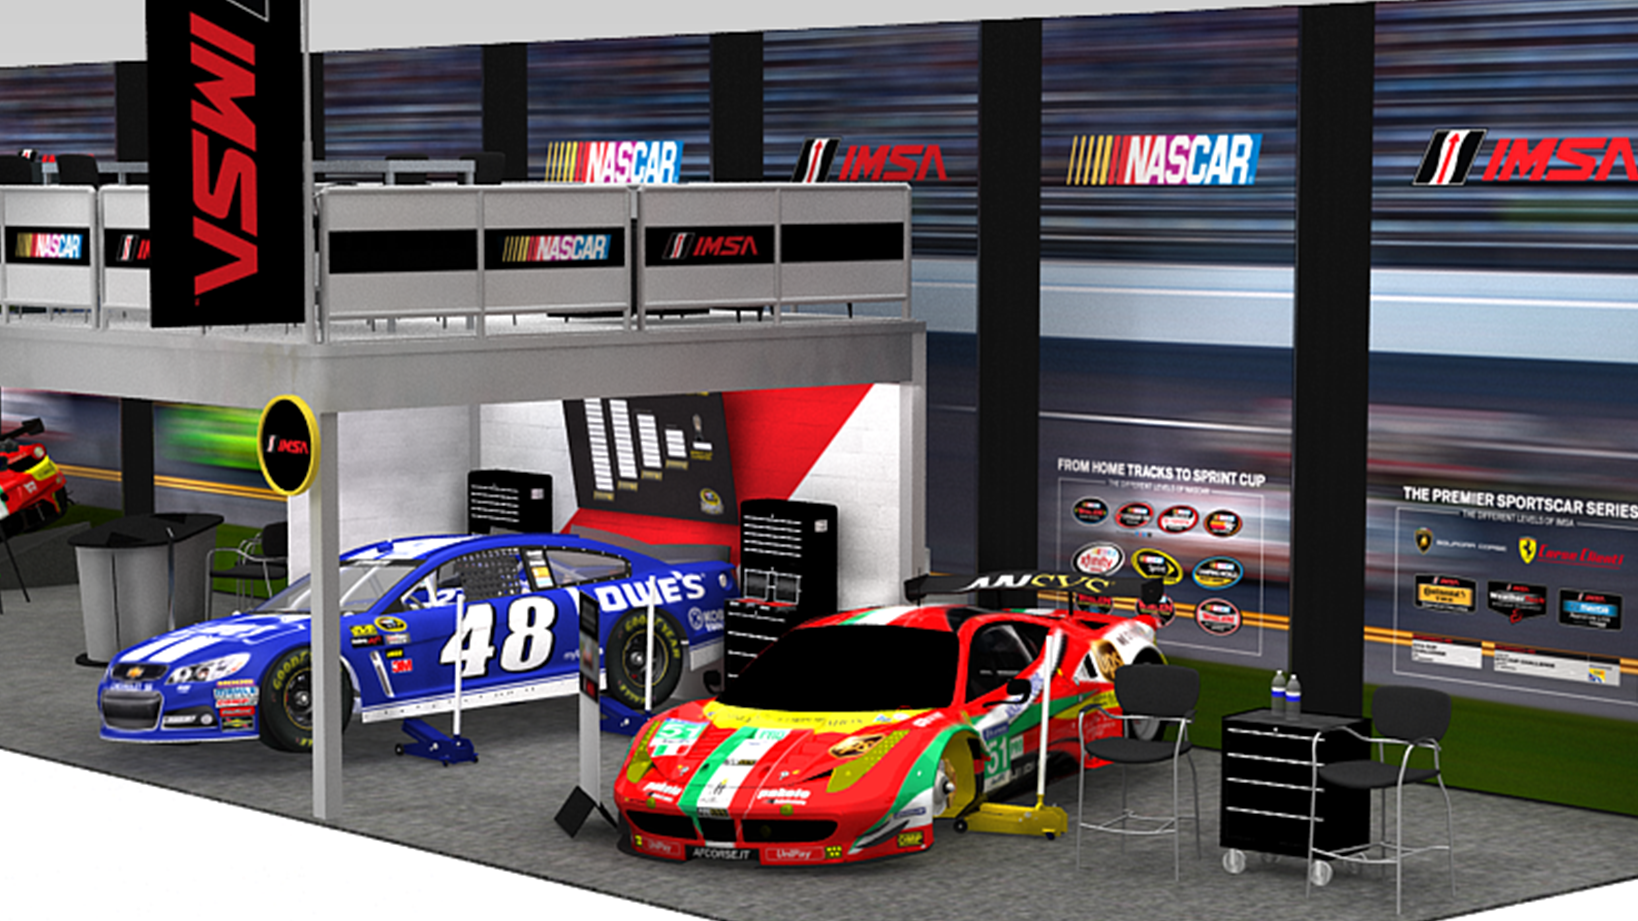 NASCAR Tradeshow Booth and Environmental Design